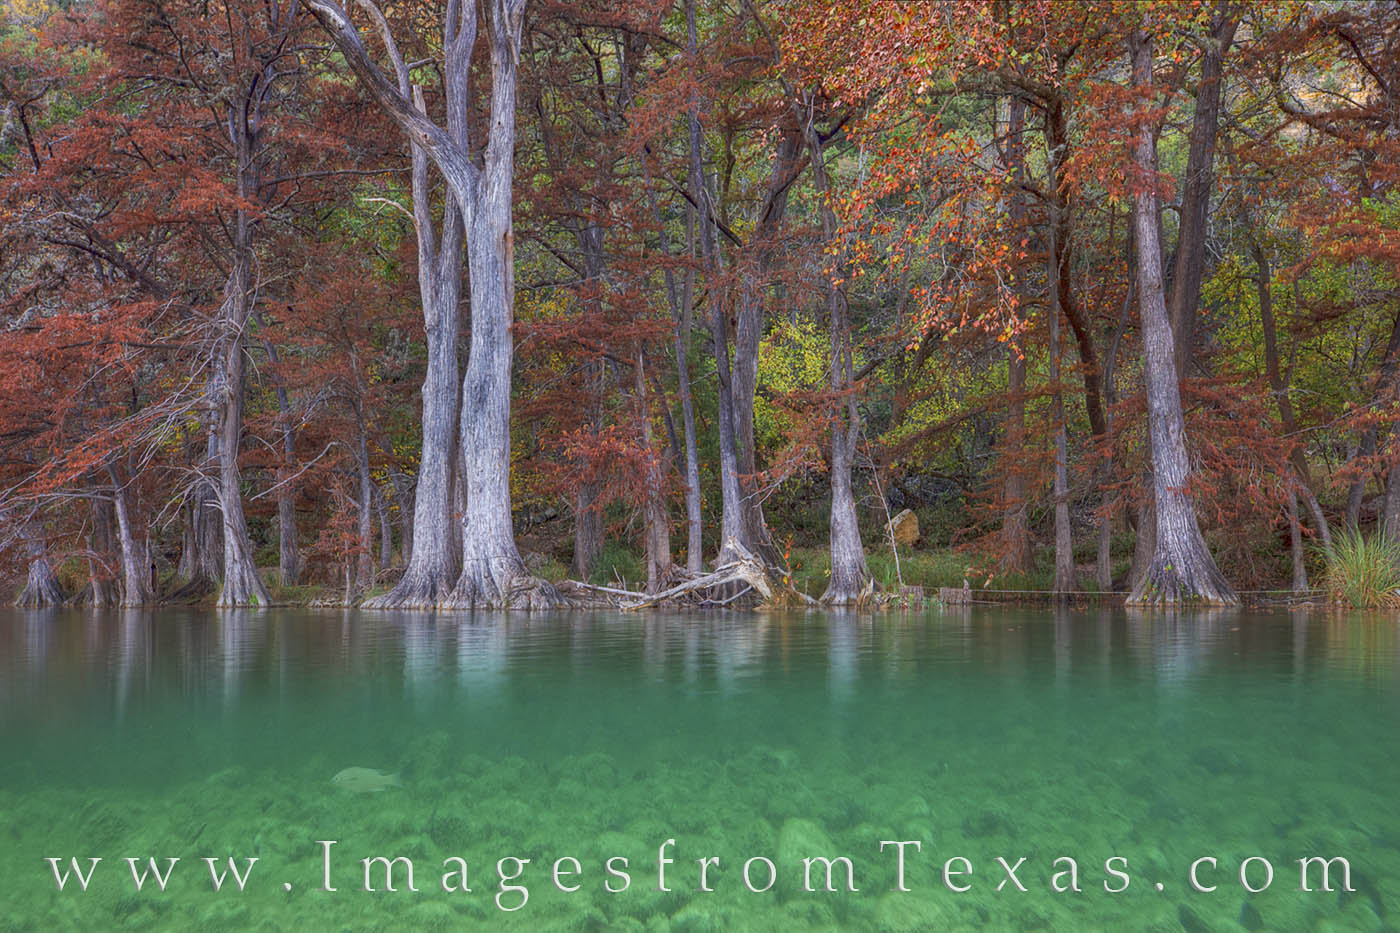 garner state park, autumn colors, texas hill country, fall colors, texas fall colors, frio river, frio river images, water, beneath the water, fish, photo